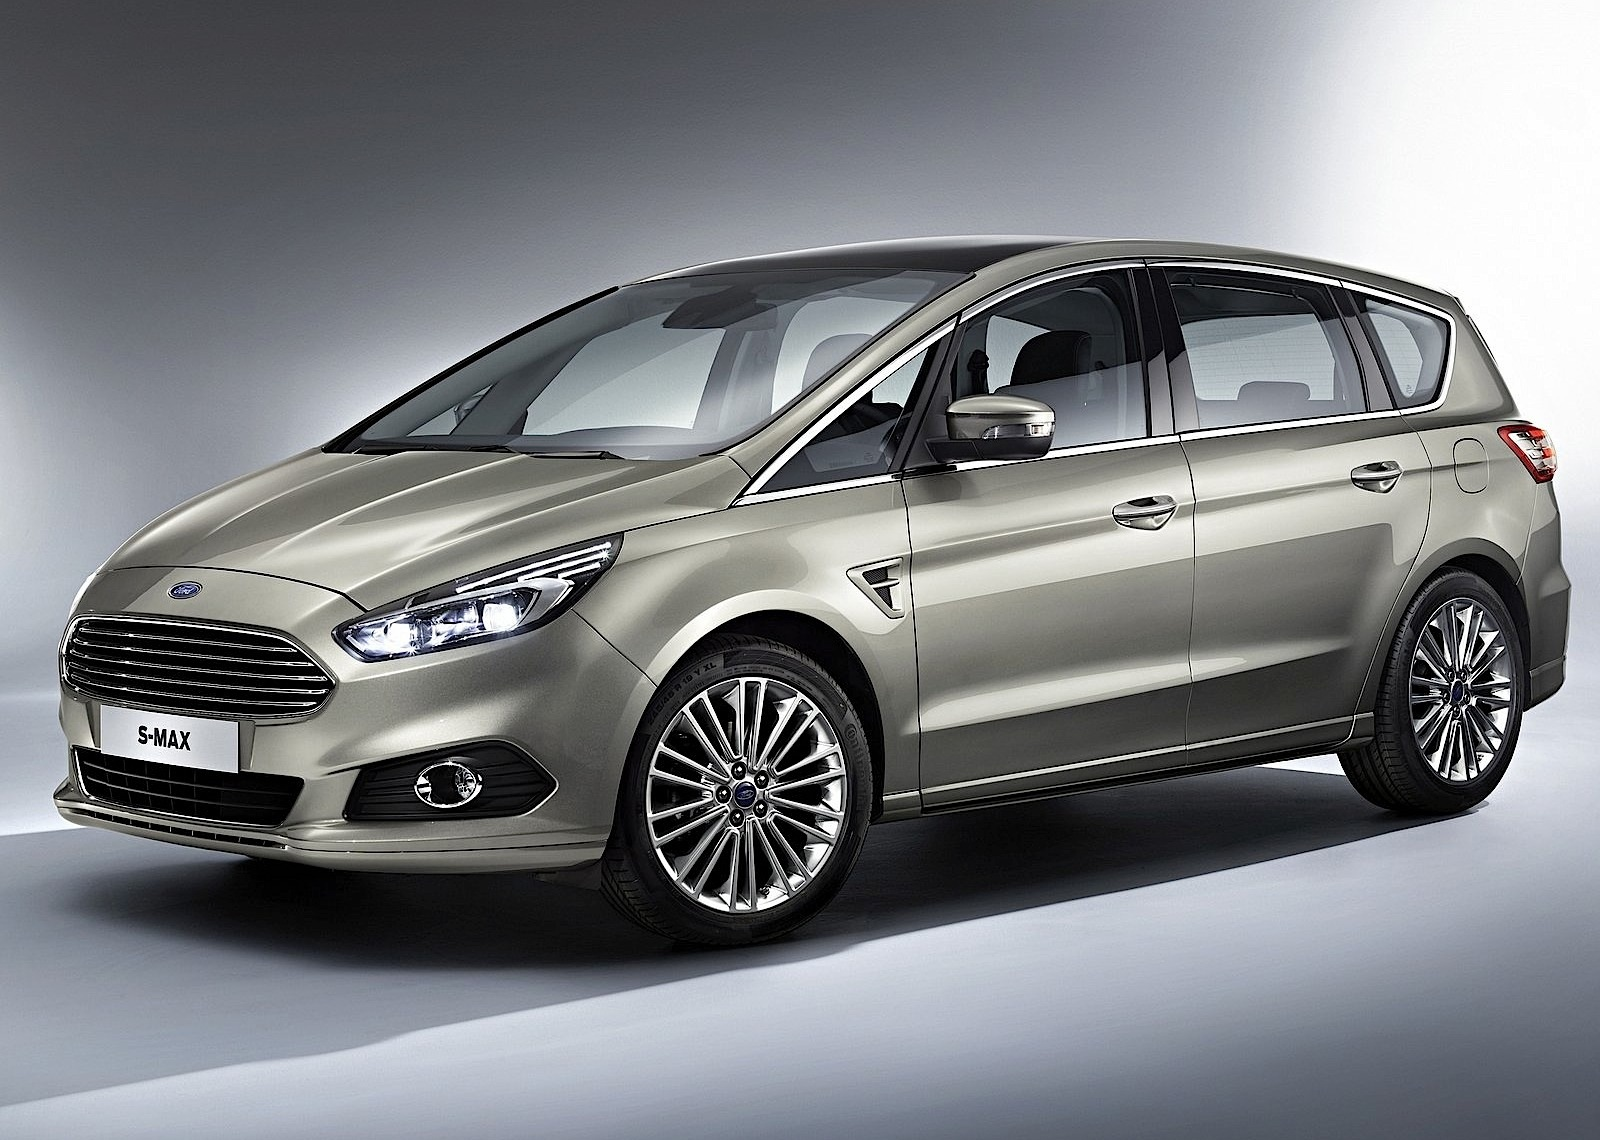 2019 Ford S MAX photo - 6